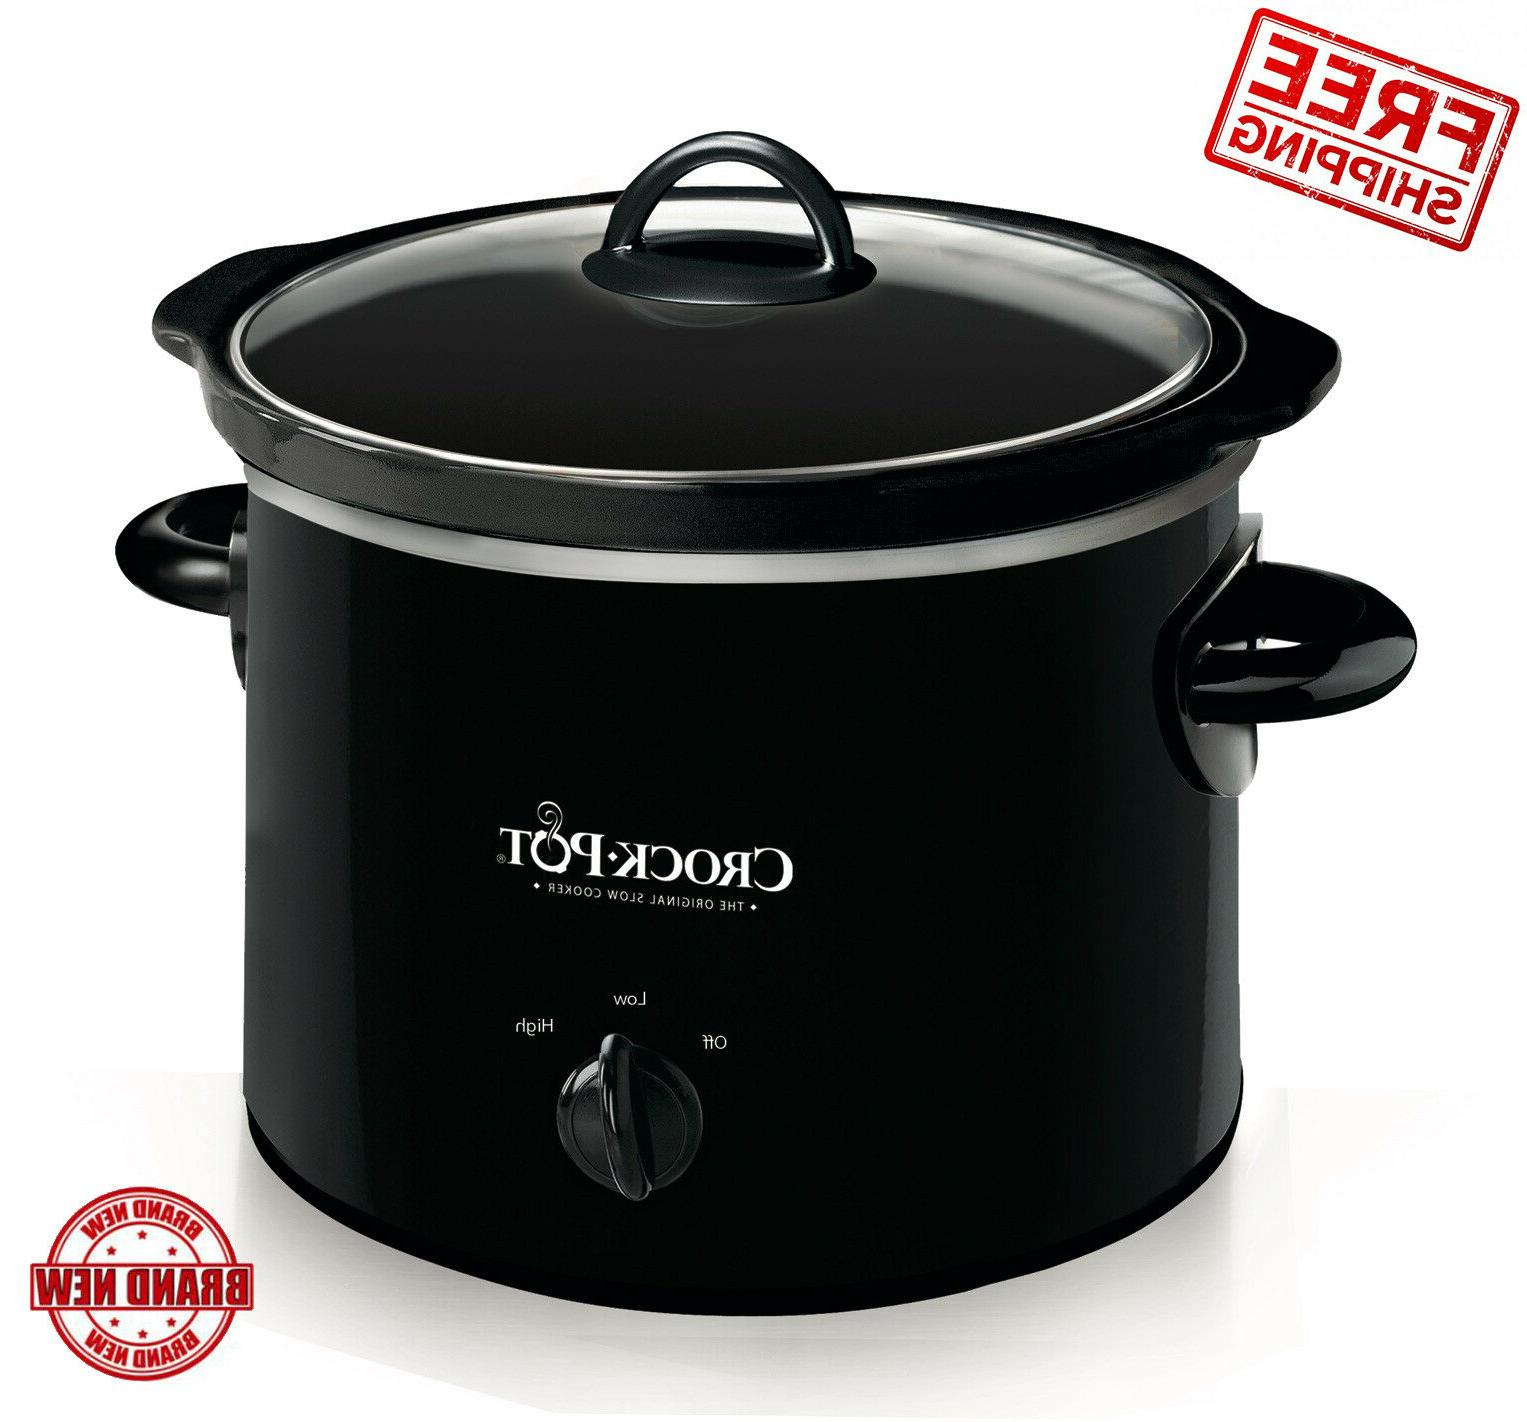 Kitchen Small Cooking Crock-Pot 2-Quart Round Manual Slow Co